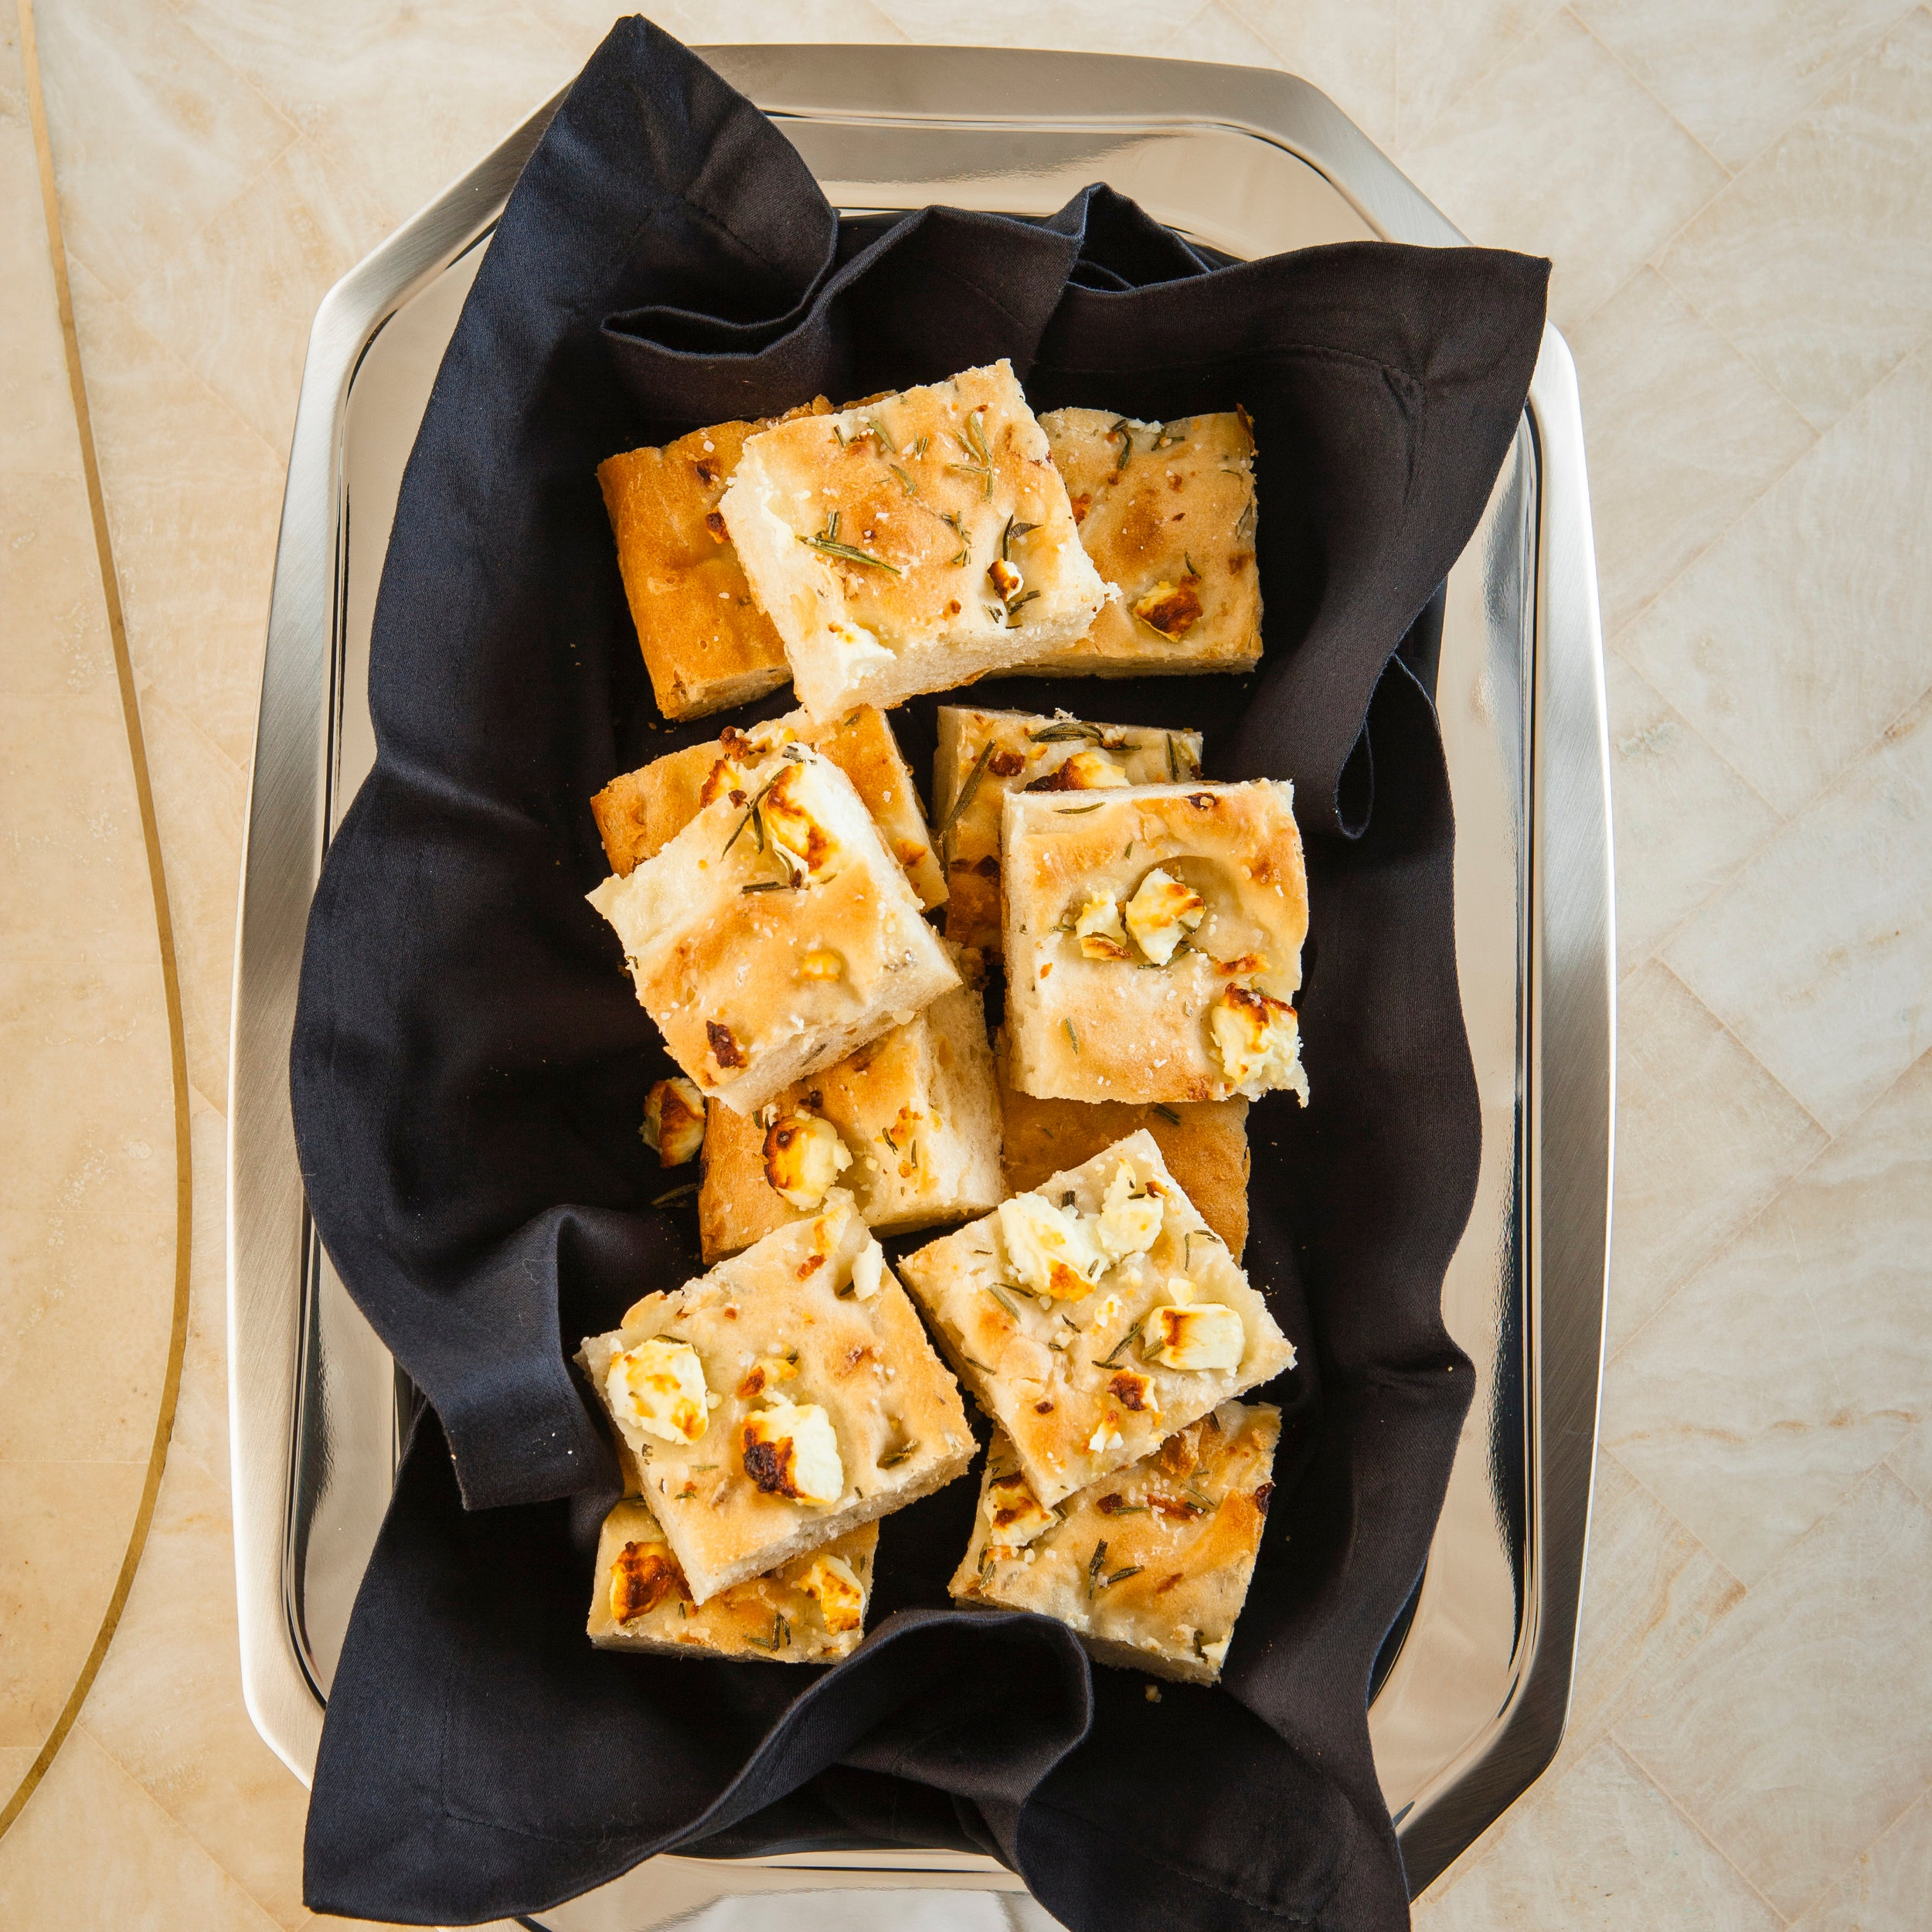 Caramelized onion focaccia with rosemary and goat cheese.jpg